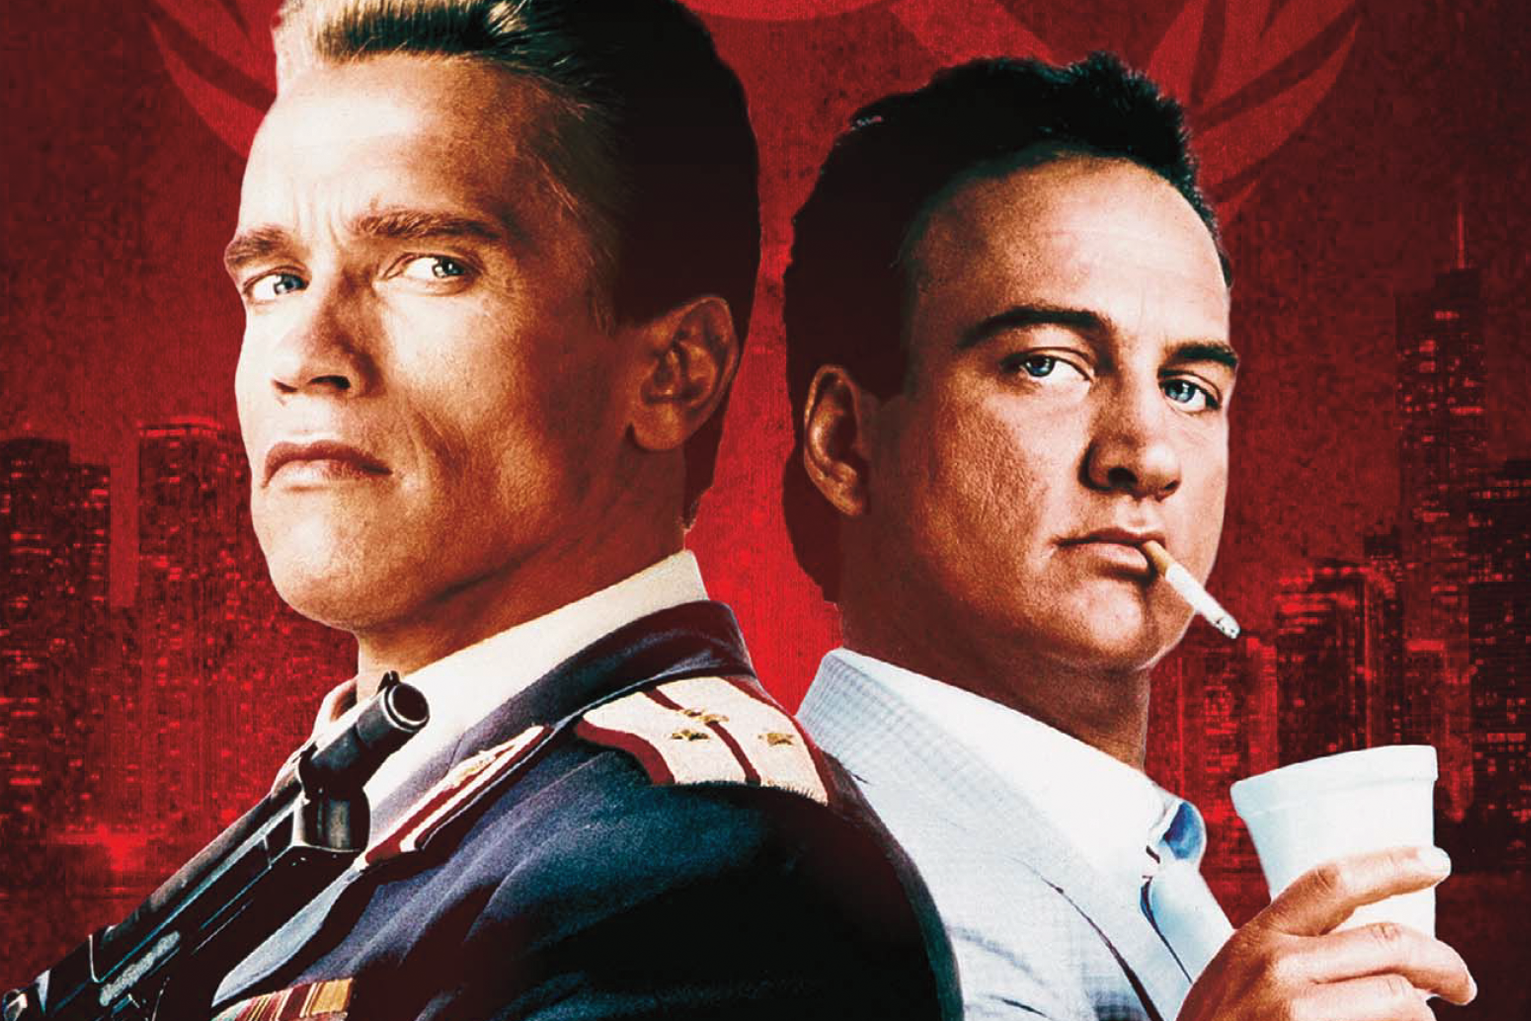 [News] RED HEAT Arriving on 4K HD, Blu-ray and DVD This October